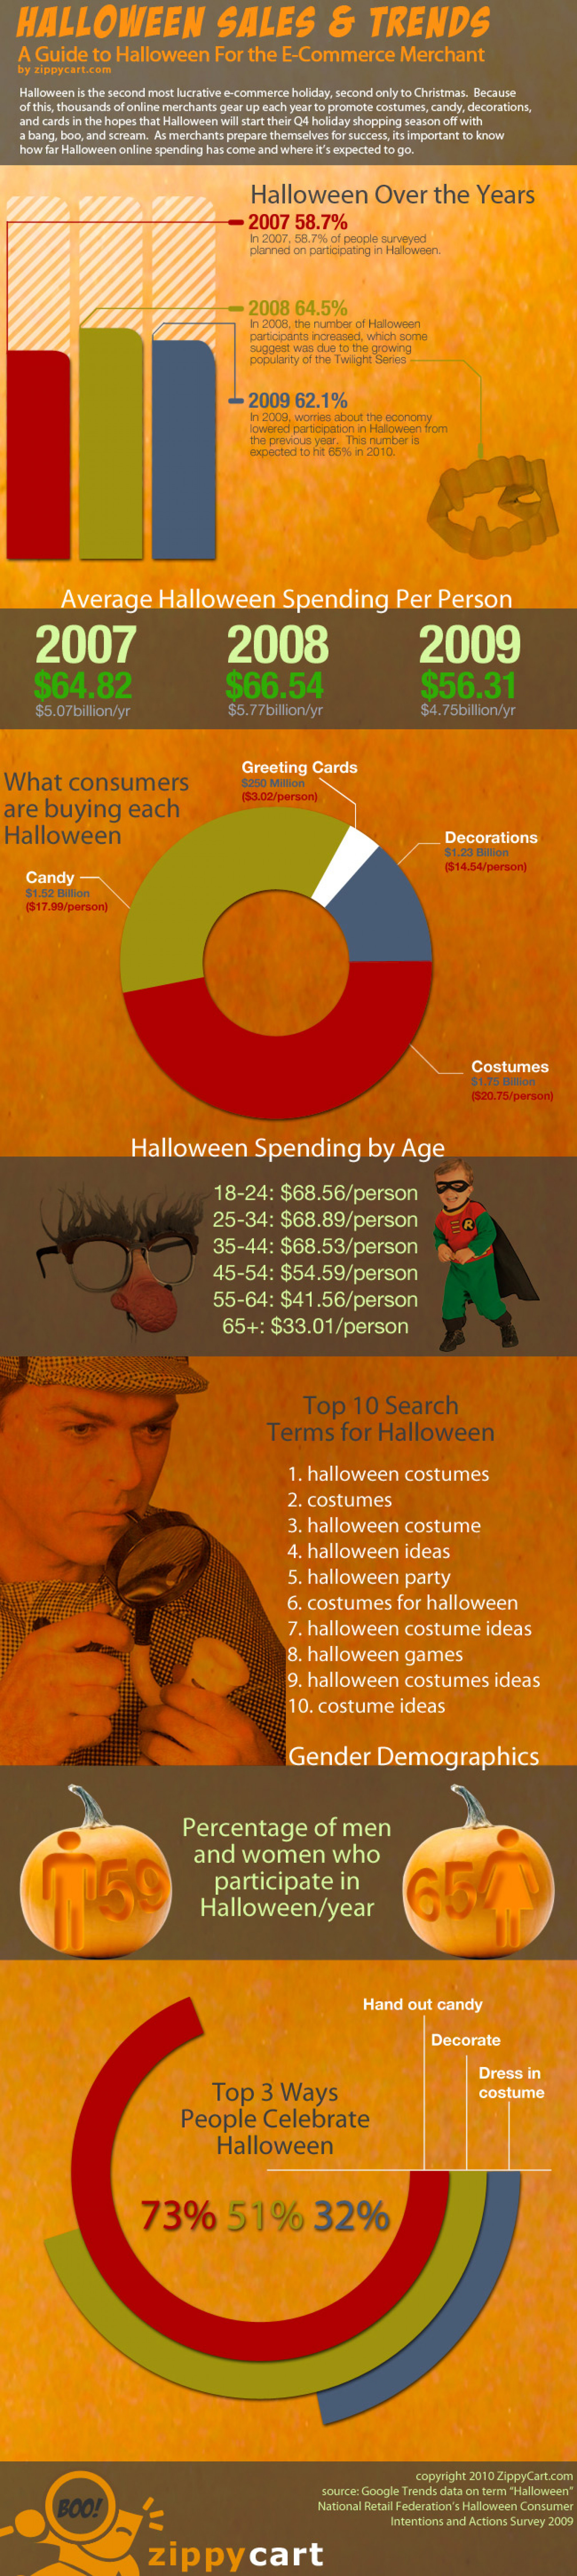 Halloween Sales & Trends Infographic